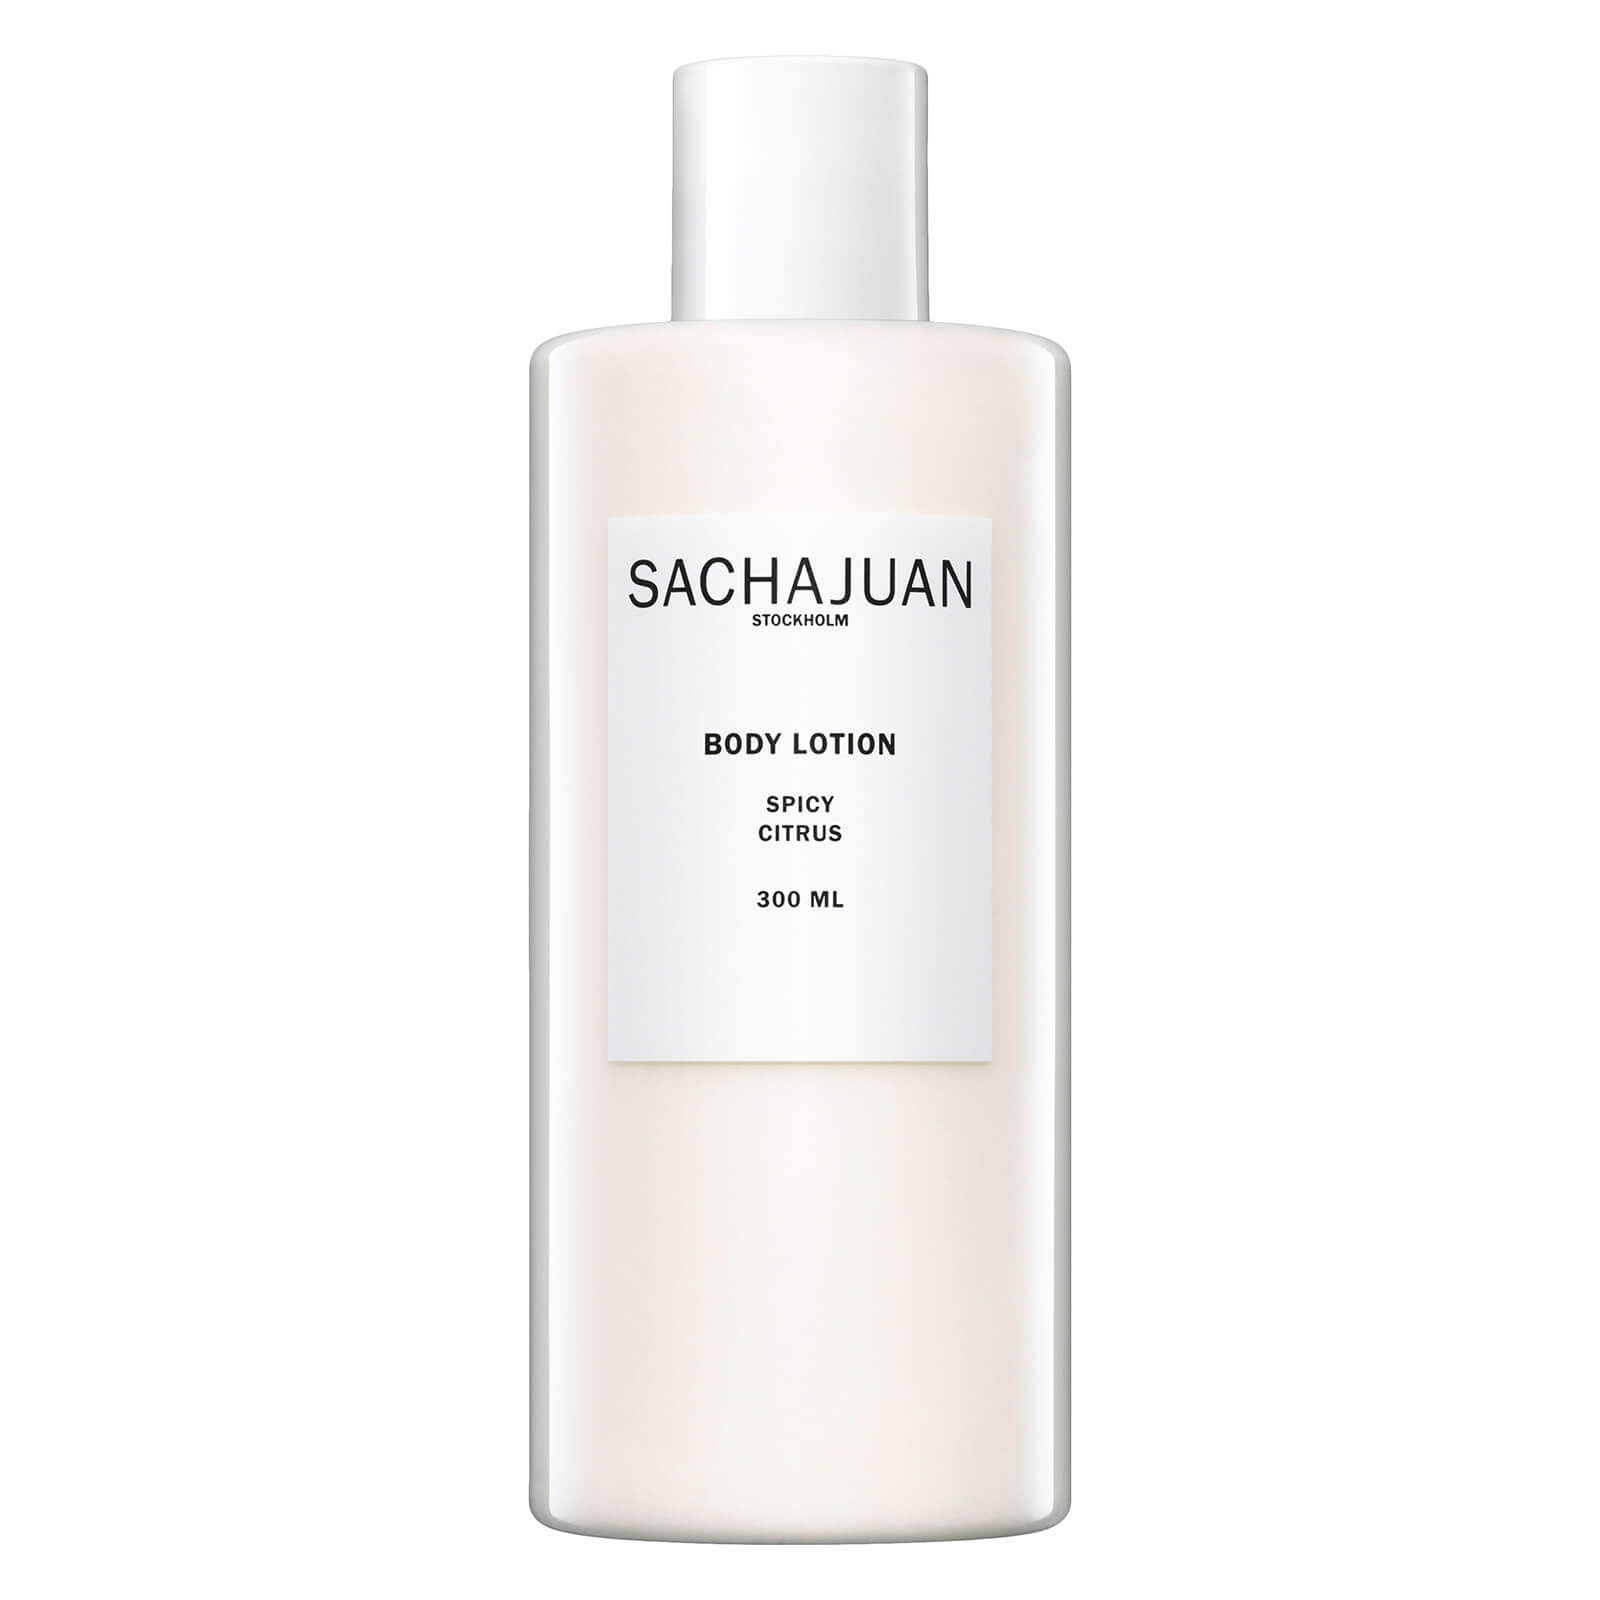 6.4折!Sachajuan Spicy Citrus 身体乳 300ml